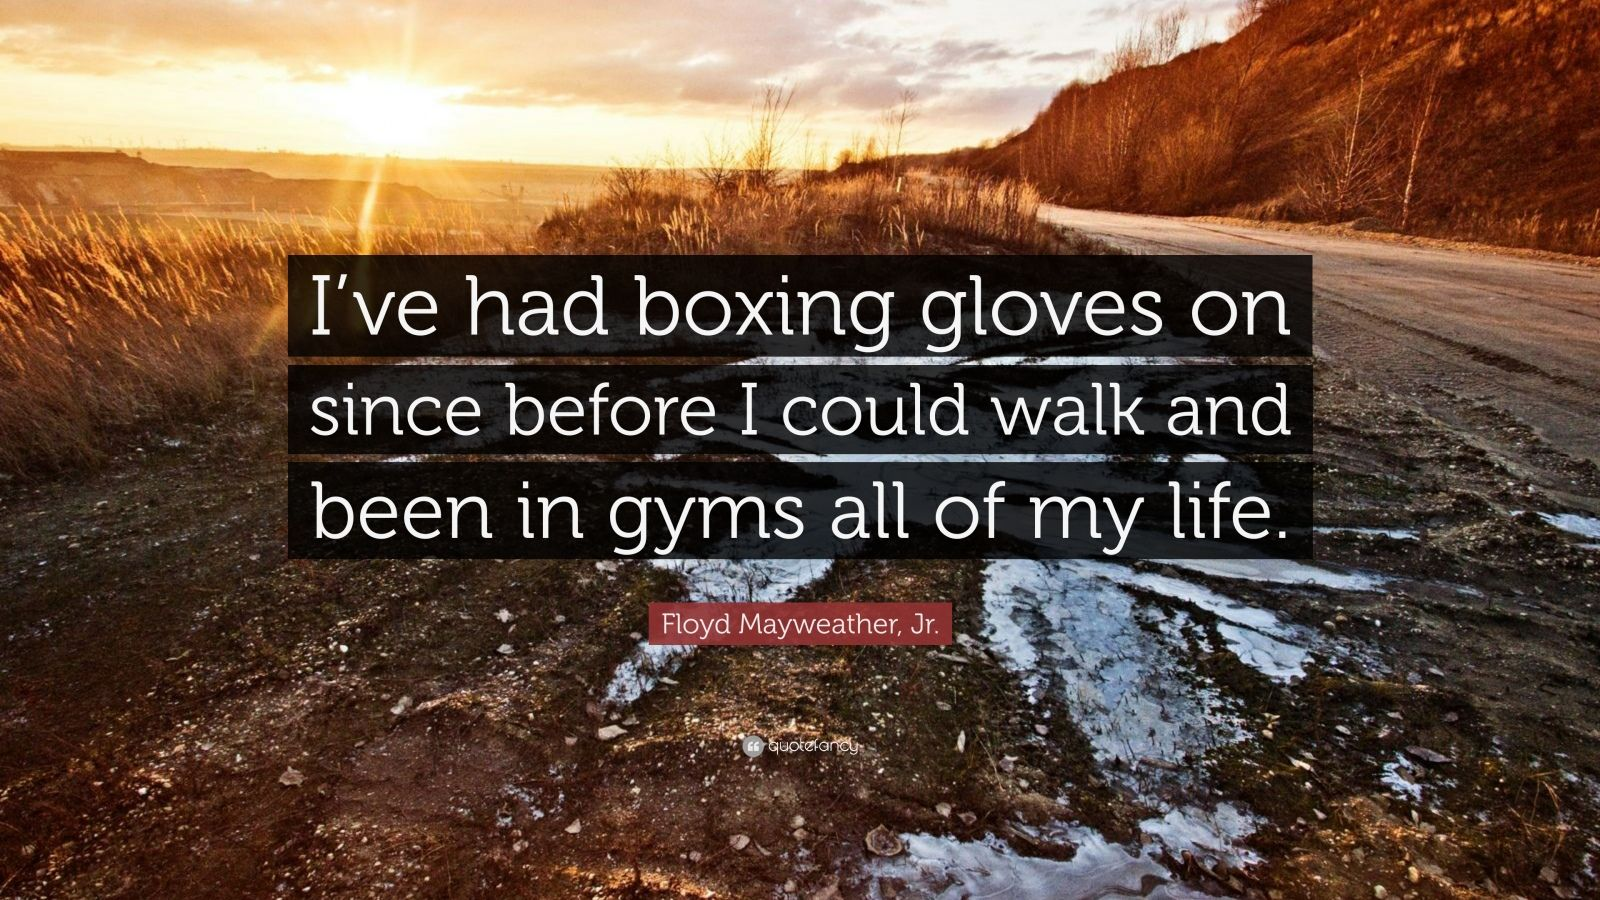 """Floyd Mayweather, Jr. Quote: """"I've had boxing gloves on since before I could walk and been in gyms all of my life."""""""